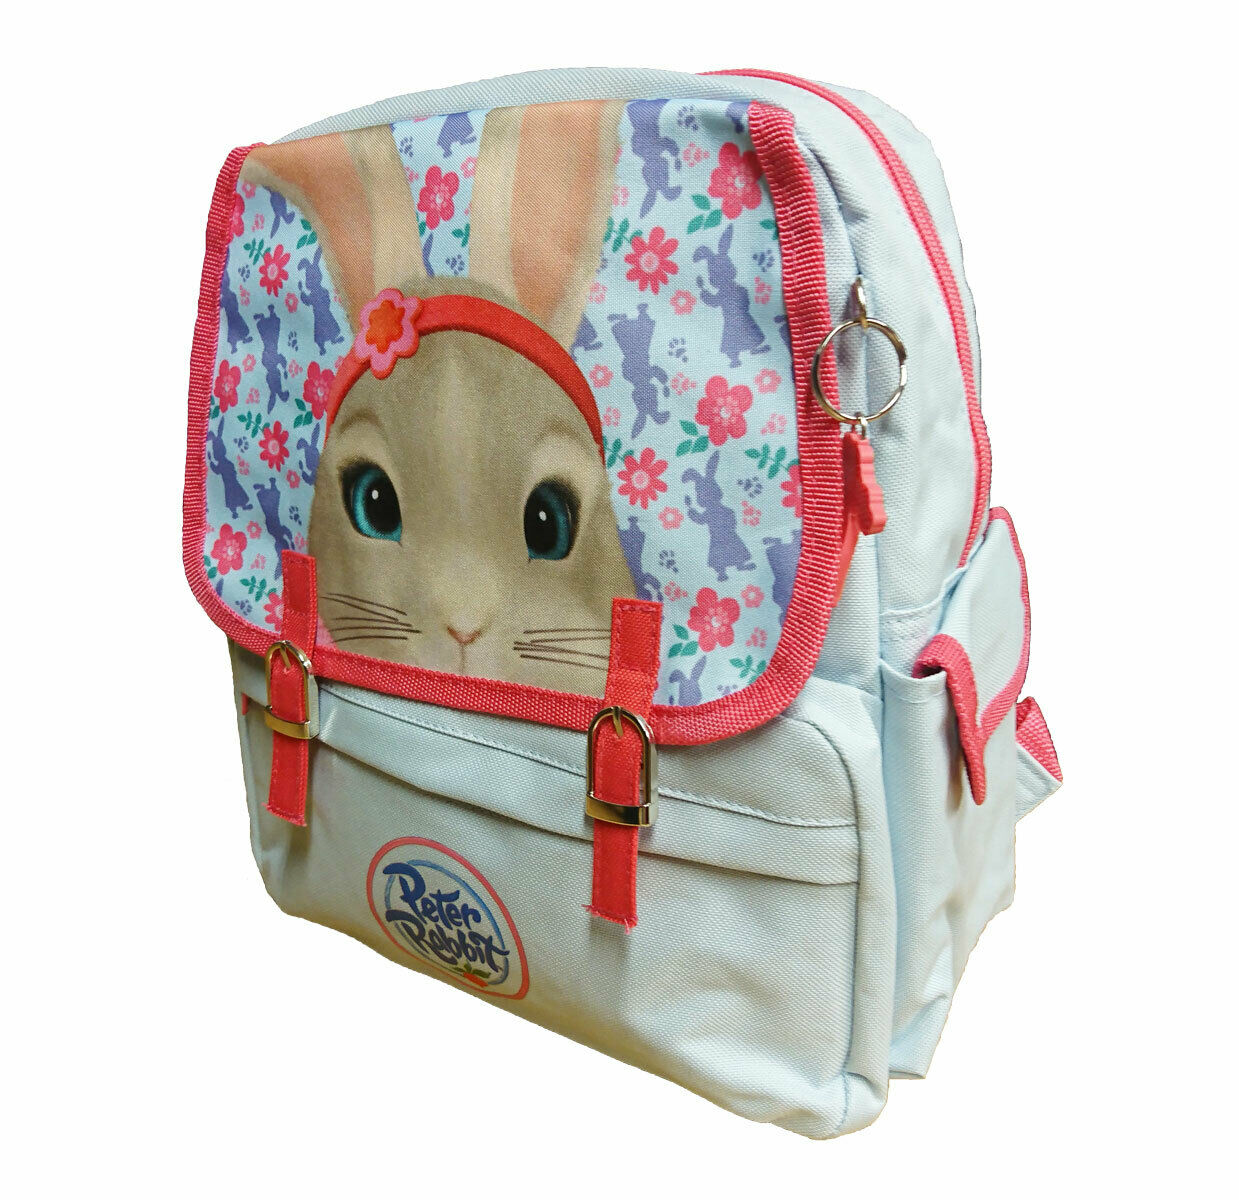 Peter Rabbit Girls Buckle Design Blue/pink School Bag Rucksack Backpack